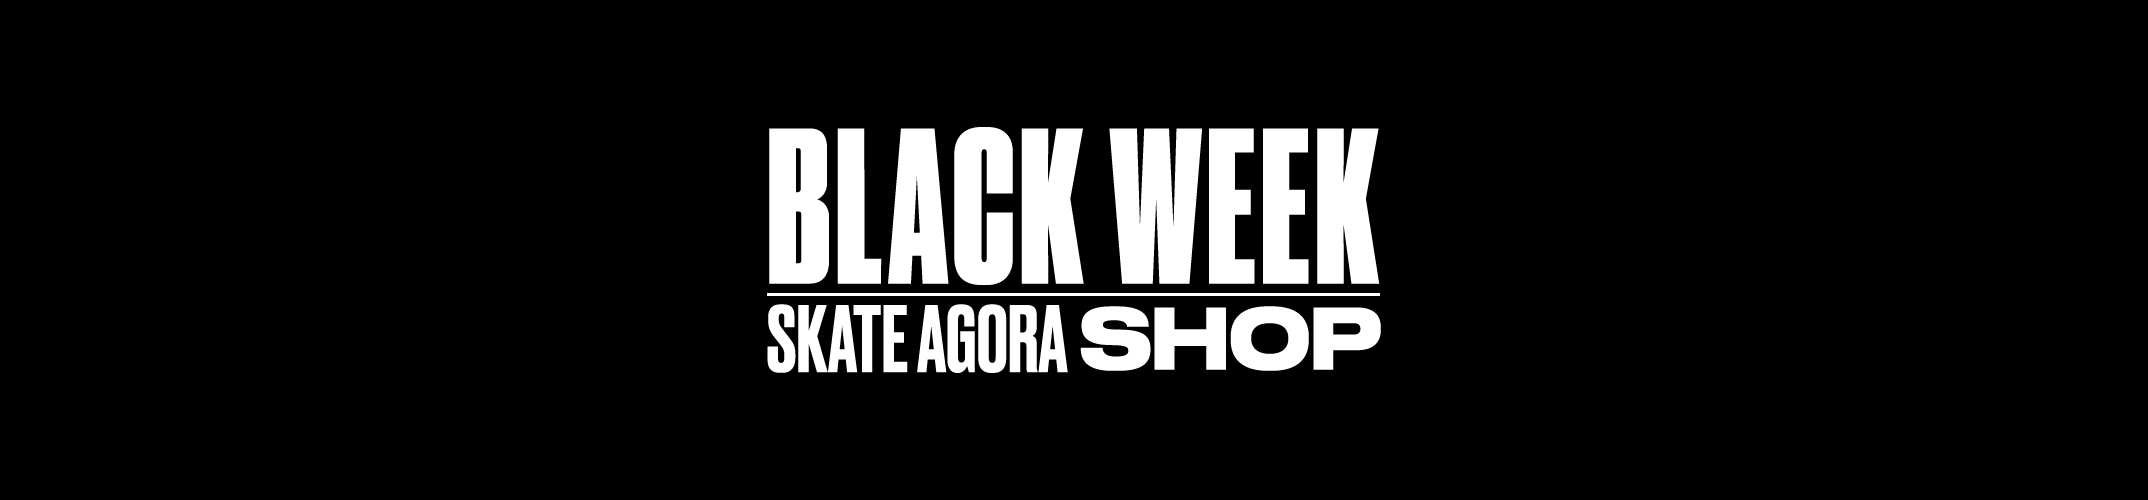 No només Black Friday, a Skate Agora Shop comença la Black Week!